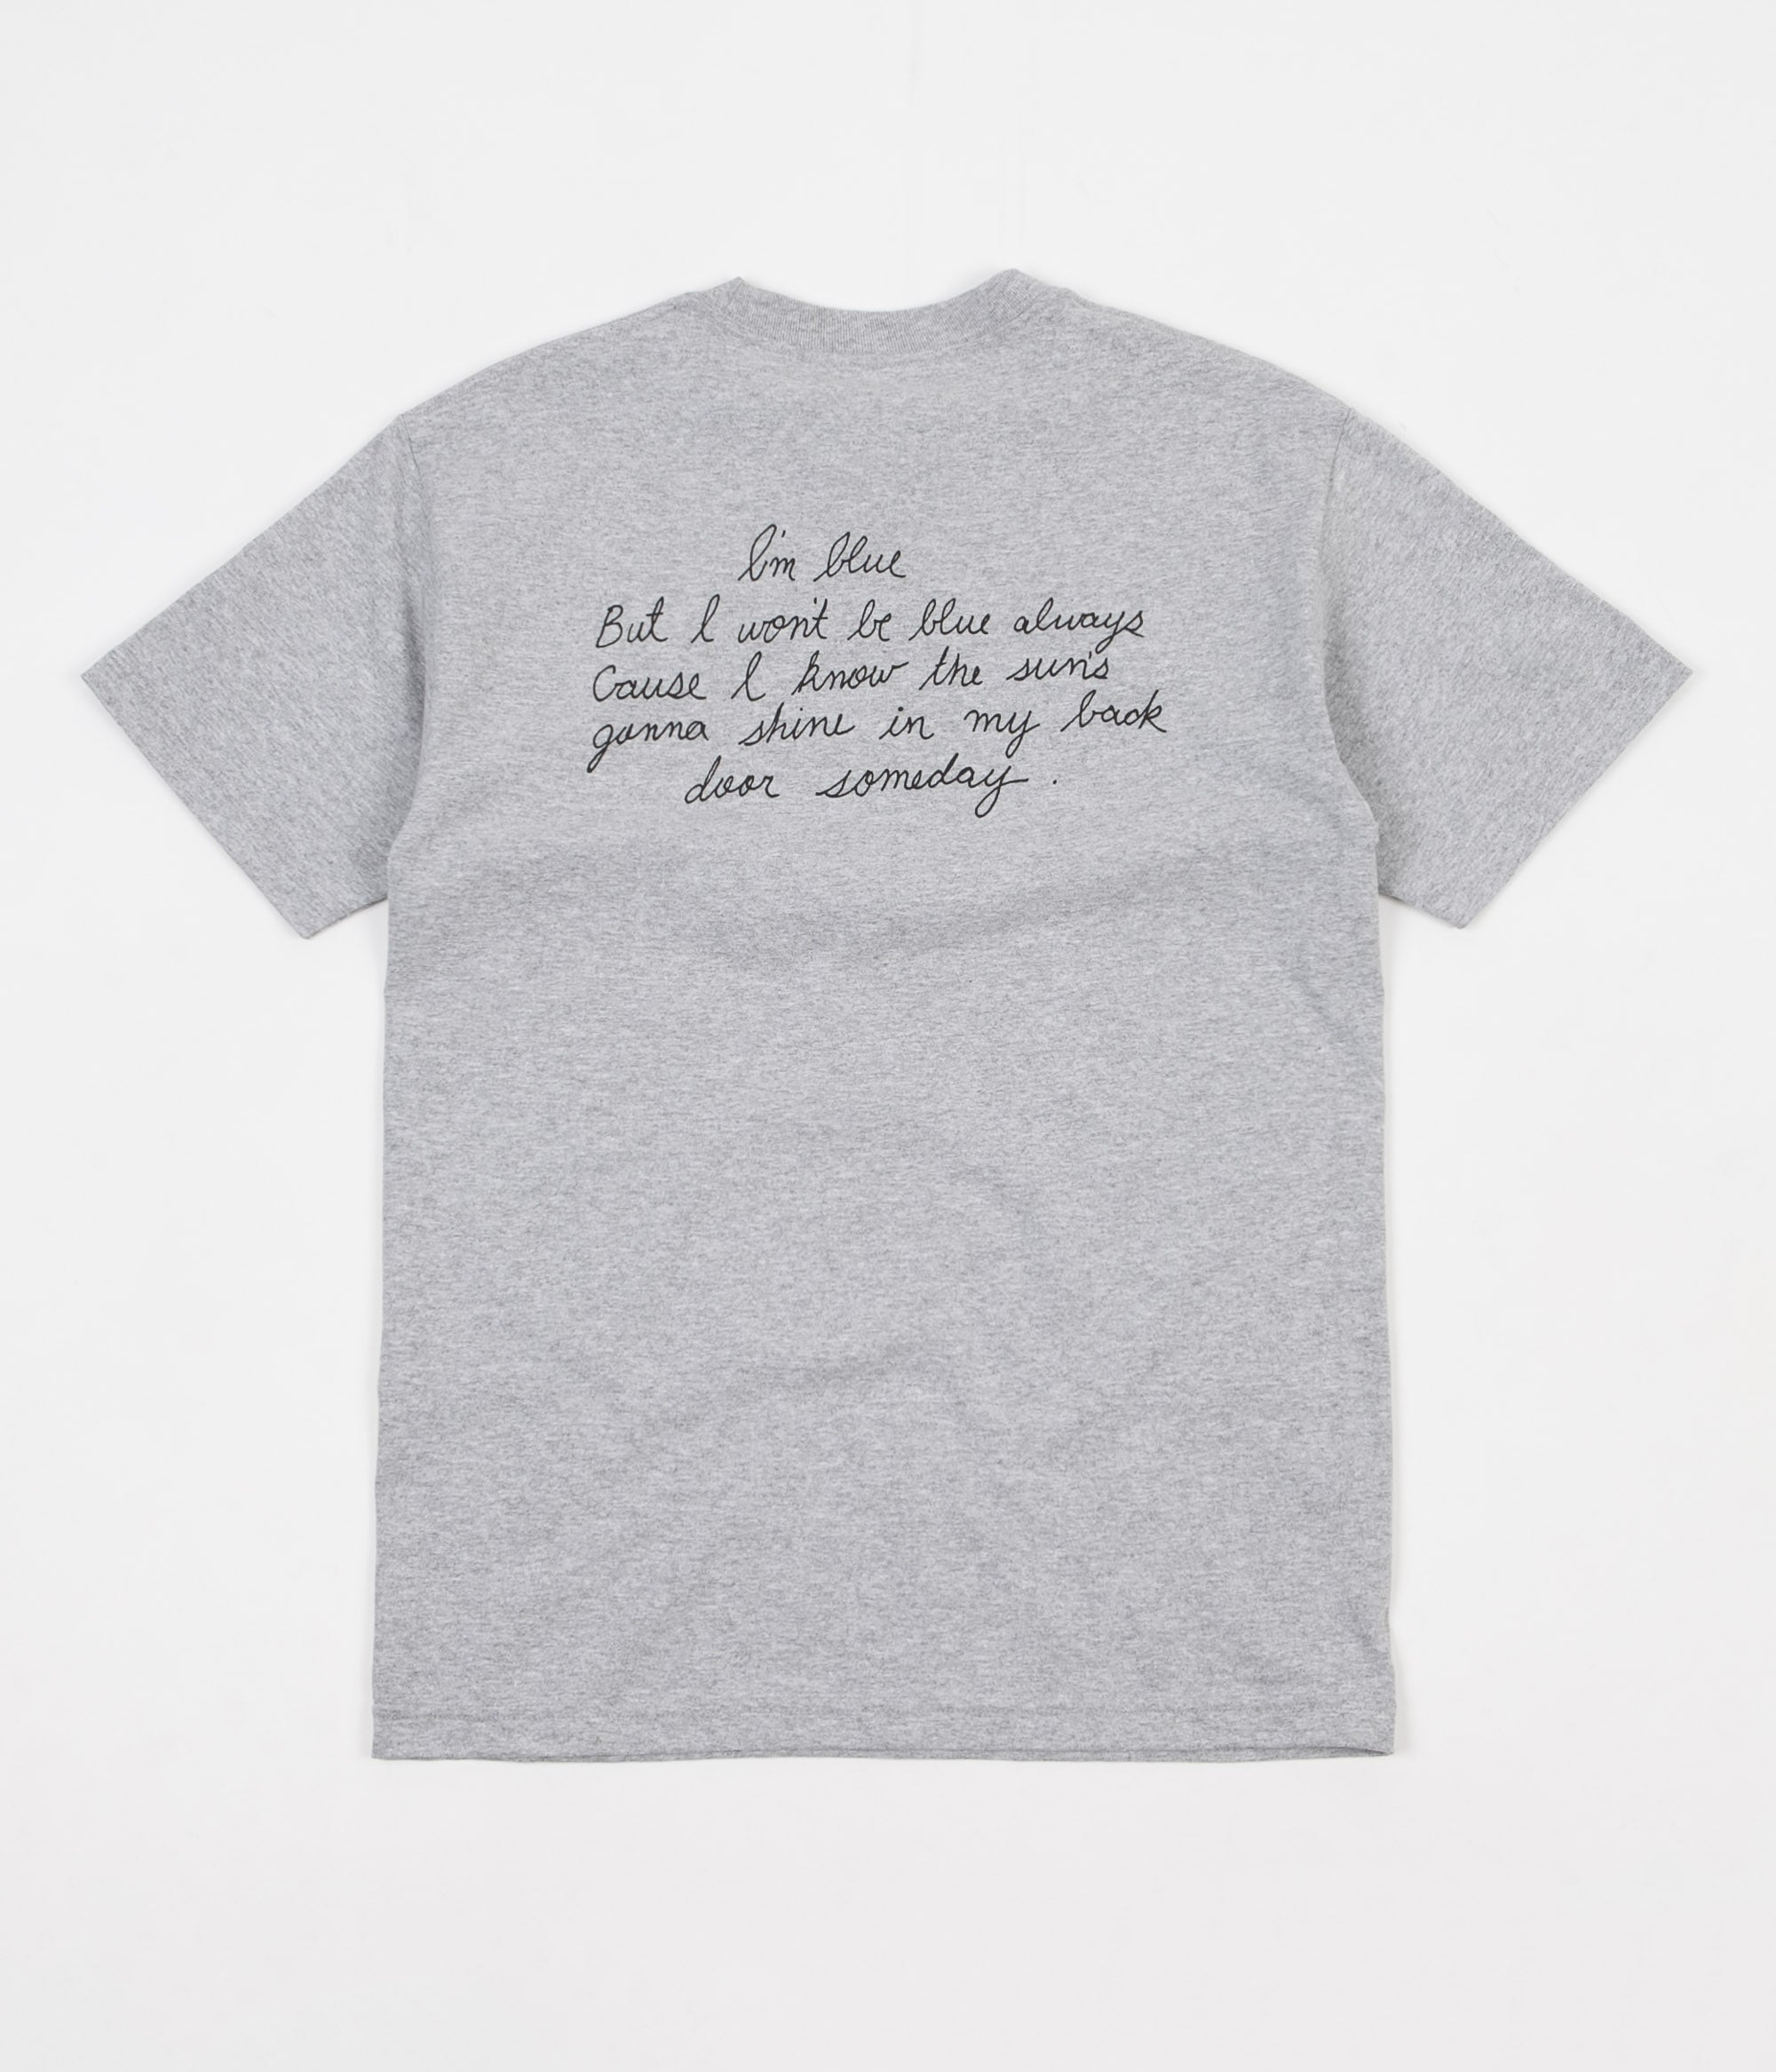 Butter Goods Trouble In Mind T-Shirt - Heather Grey